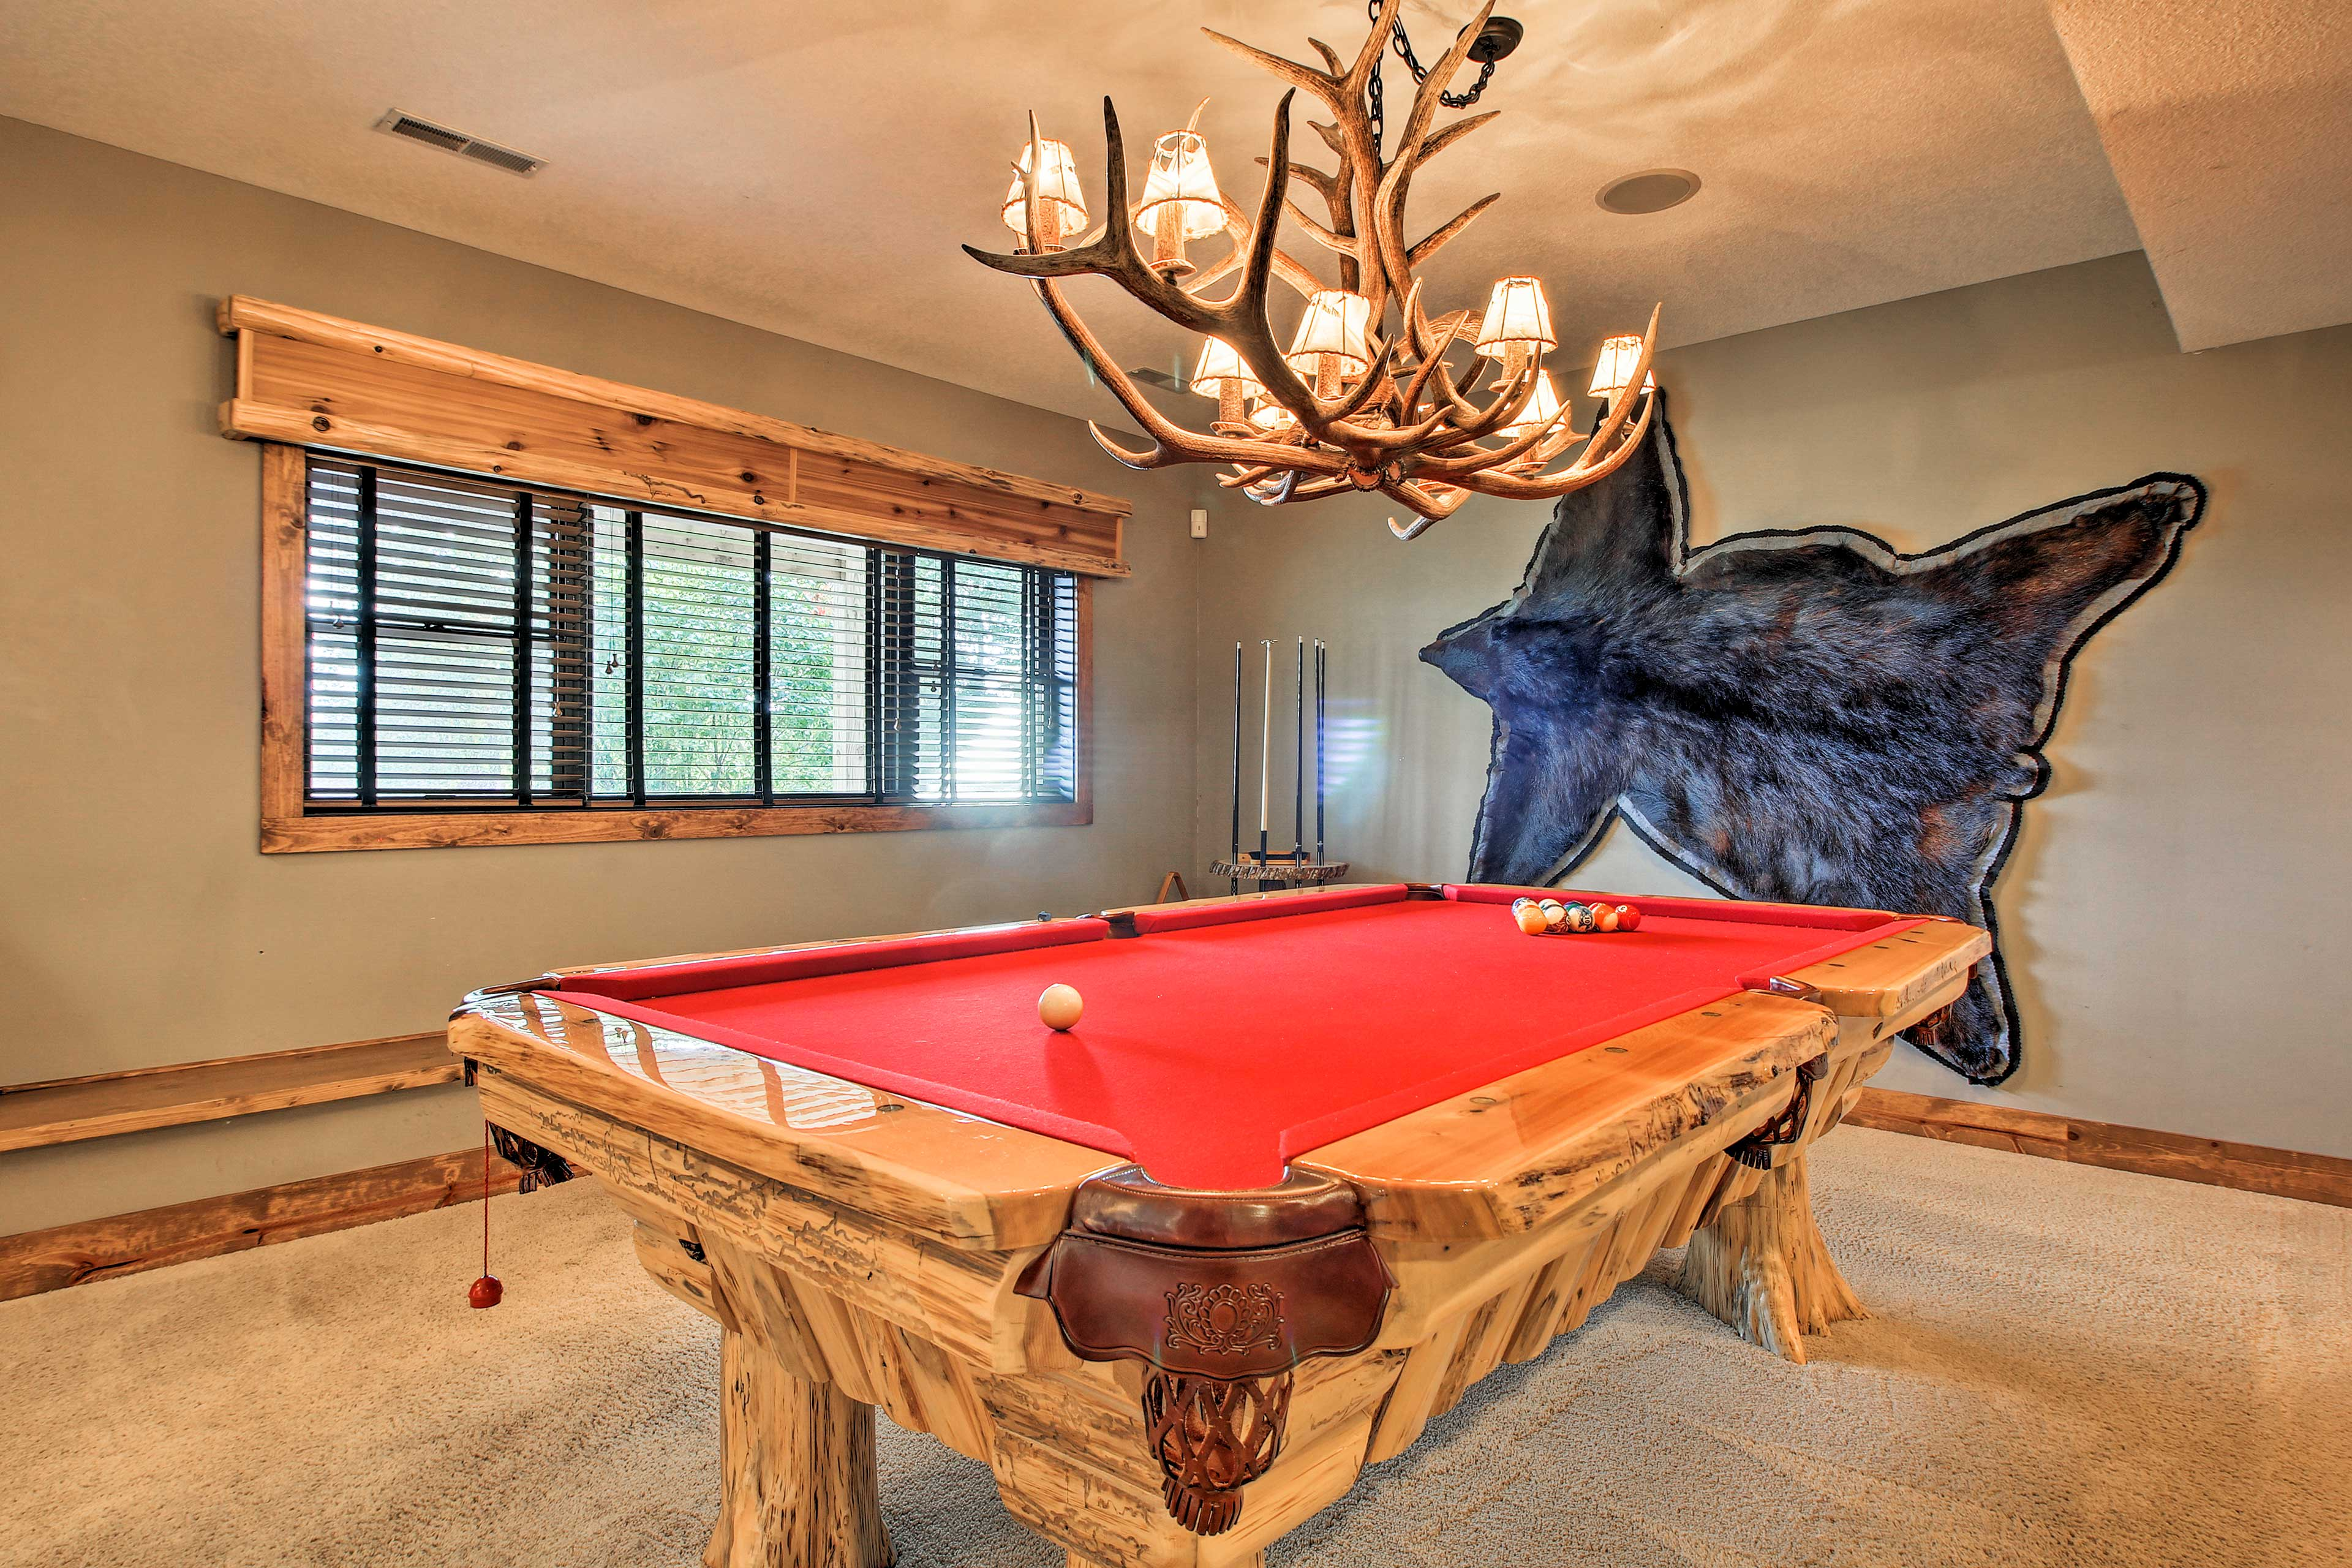 Rack up the table for some pool action!